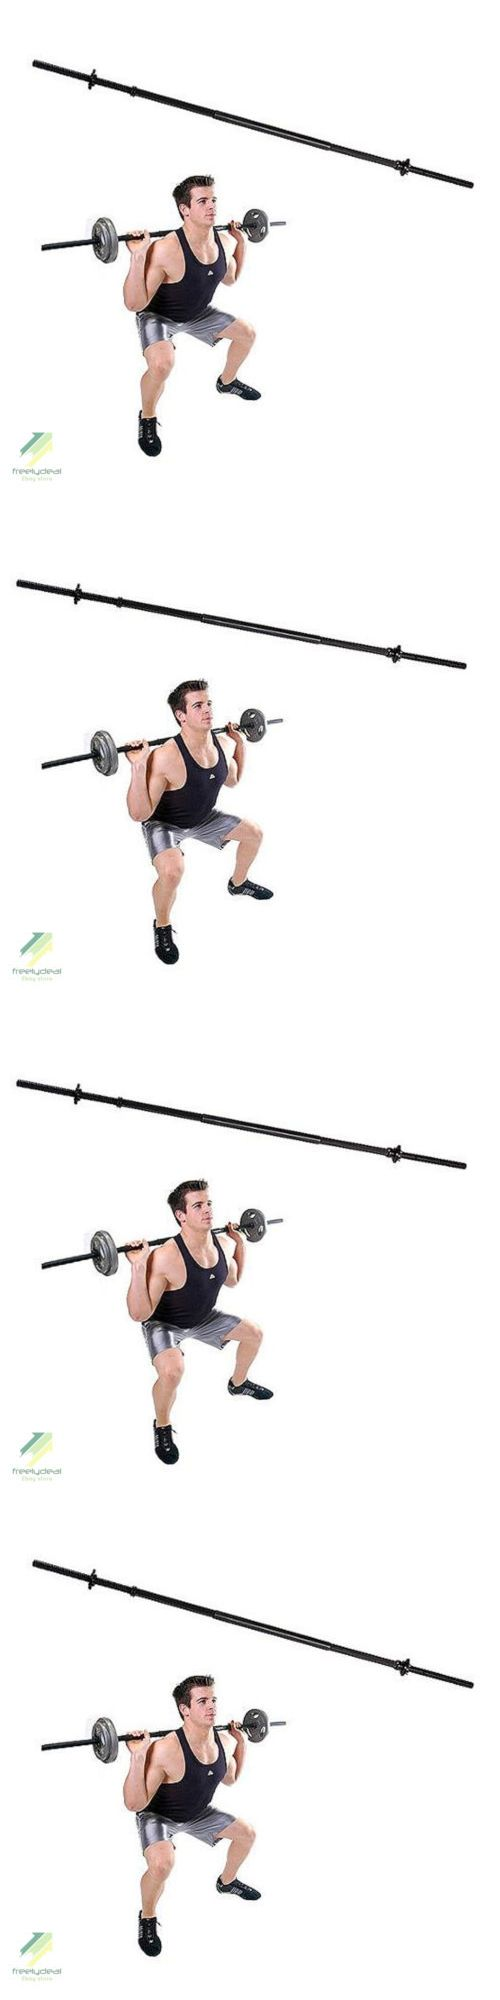 Barbells and Attachments 137864: Standard 5 Ft Golds Gym Weight Lifting Bar Fitness Exersize Workout BUY IT NOW ONLY: $47.64